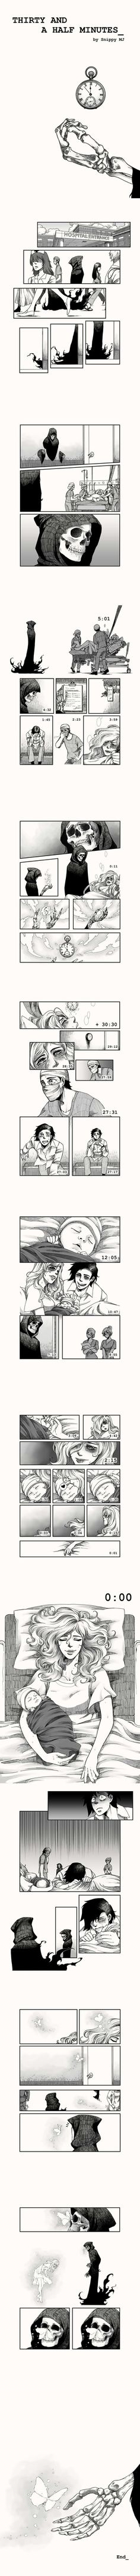 Thirty And A Half Minutes (by Snippy MJ) is part of Coffee drawings Sketches Pens - More memes, funny videos and pics on Cute Stories, Short Stories, Anime Stories, Cassandra Calin, Rage Comic, Mini Comic, Comics Story, Short Comics, Faith In Humanity